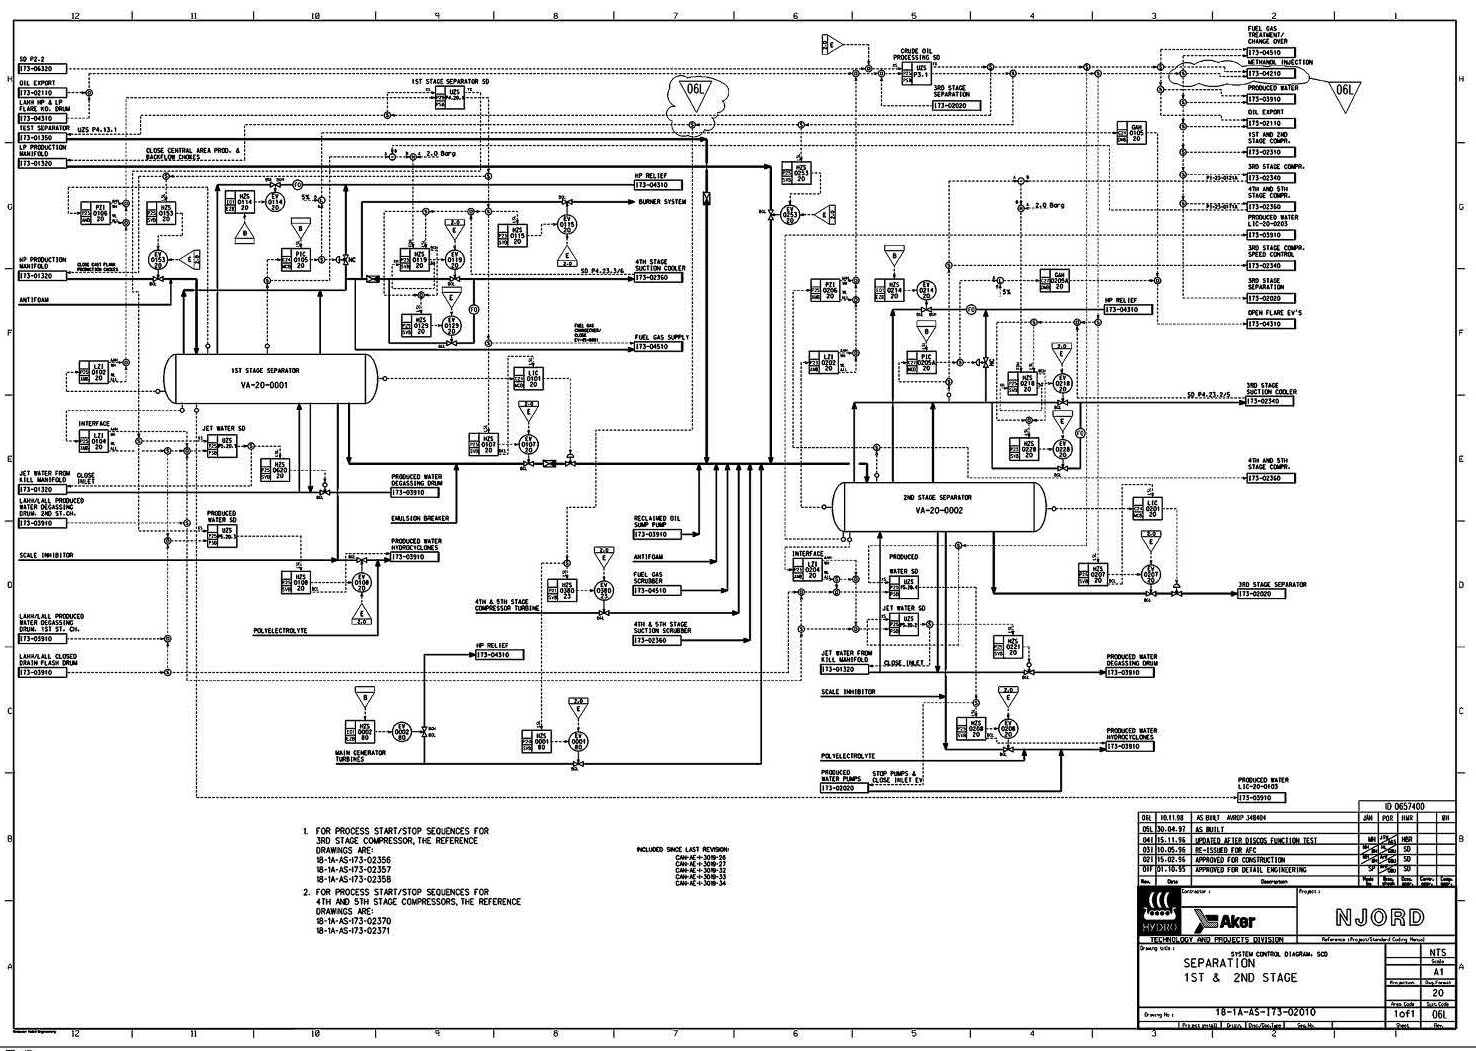 Simplified Drawings Piping And Instrumentation Drawings Pids also Earthing And Electrical Grounding Types Of Earthing in addition Pid Piping Instrumentation Data Not Drawing besides 43232 Creating P id Using Autocad in addition Process fundamentals. on piping and instrumentation diagram